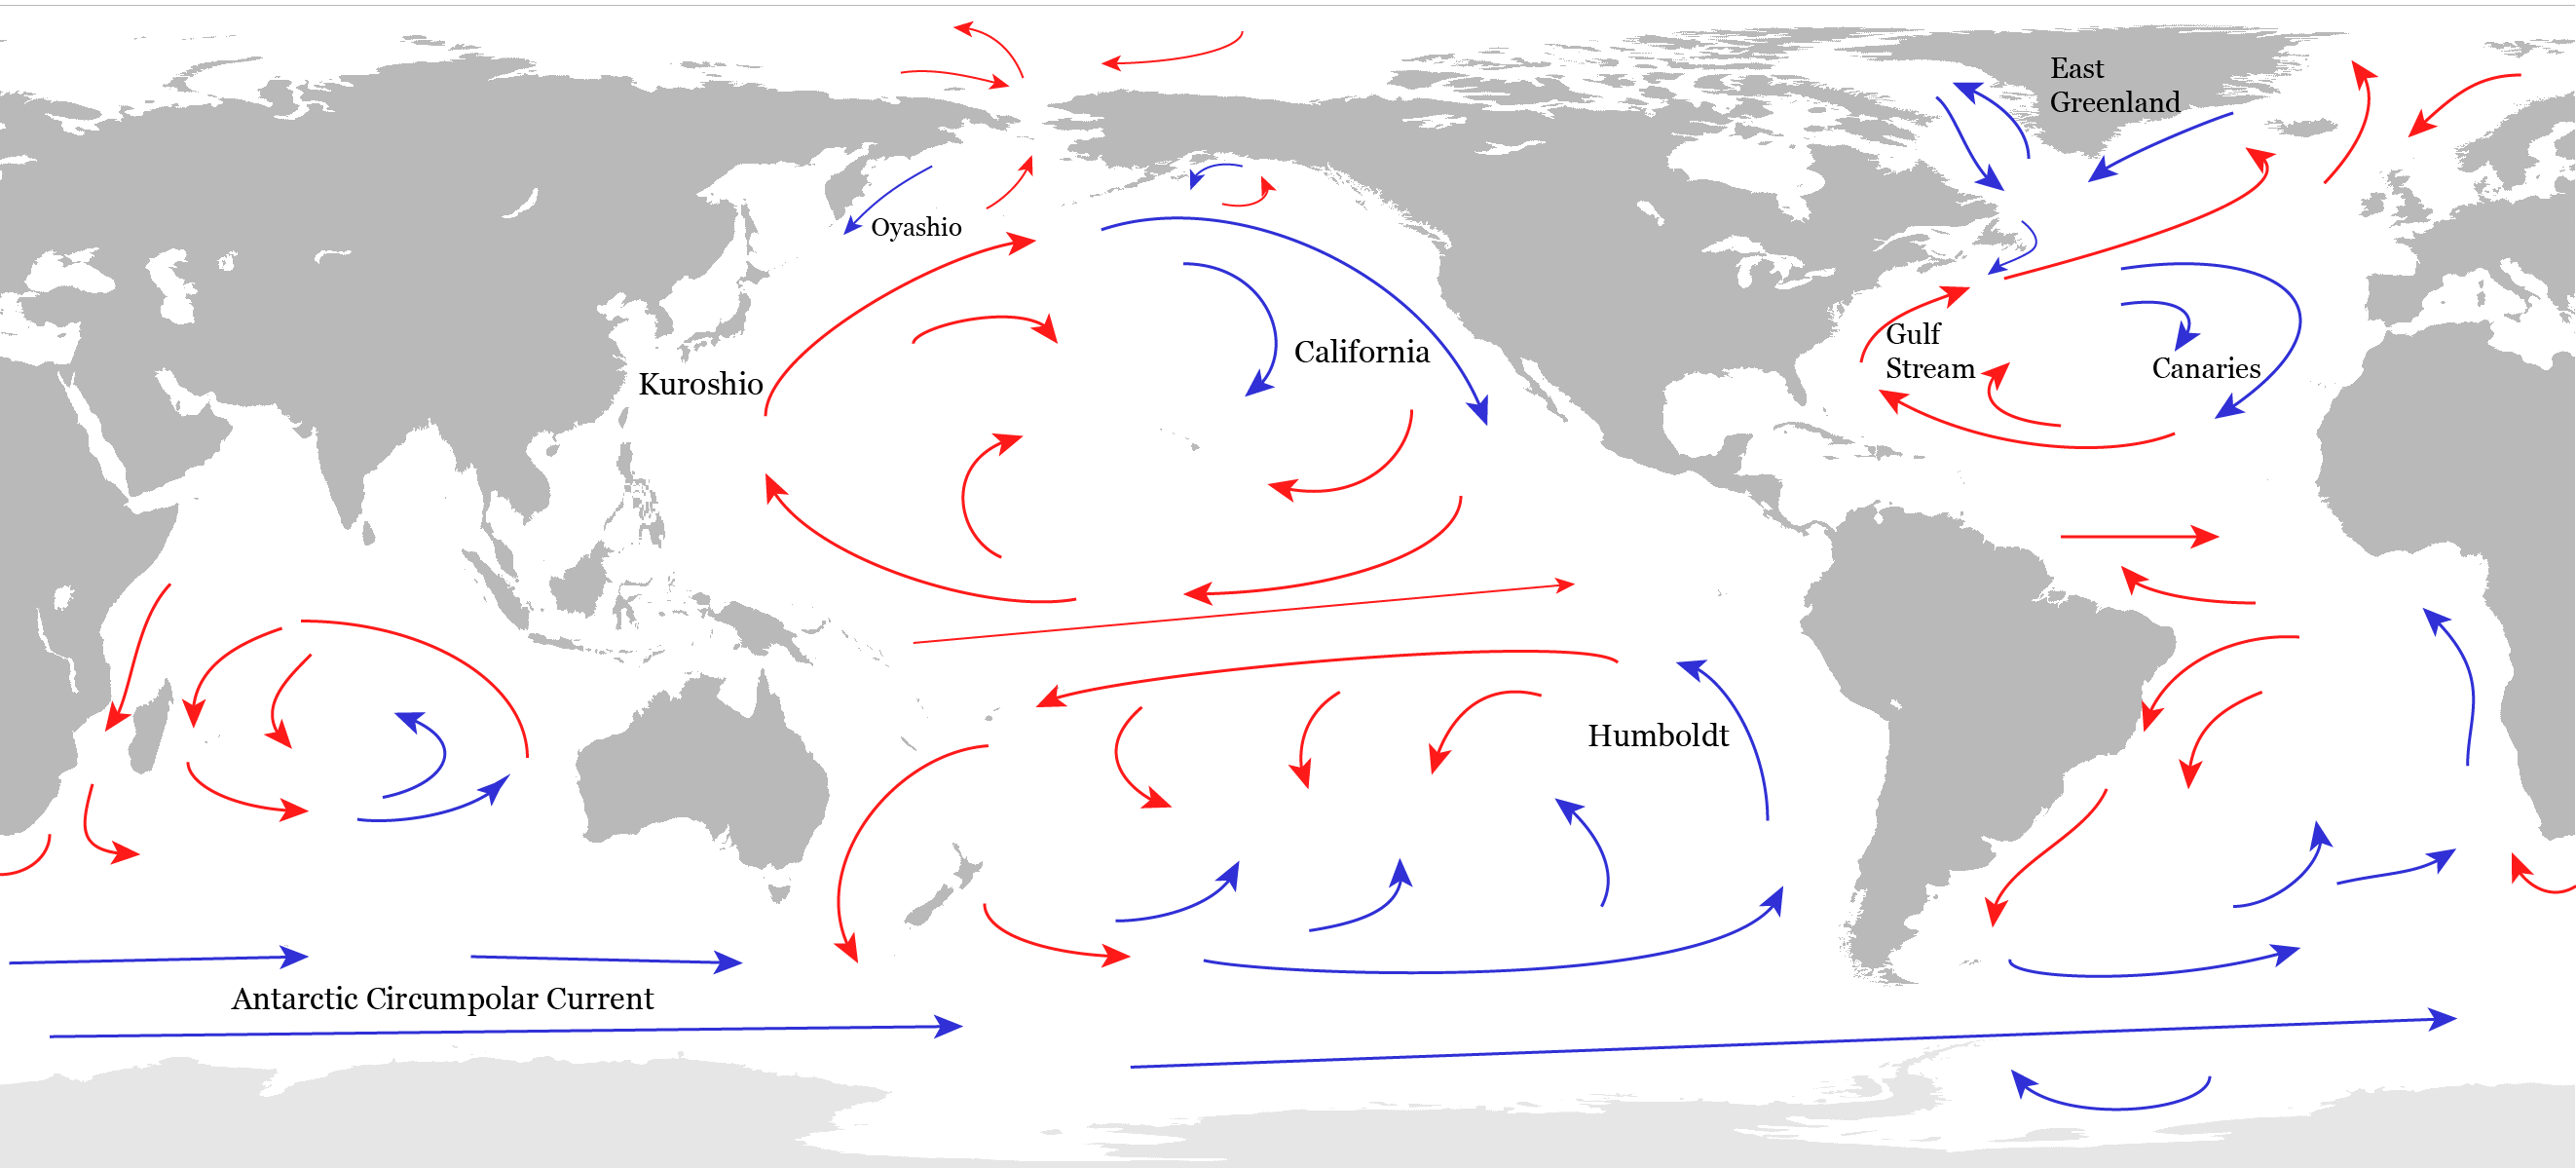 Sketch of the Surface Circulation of the Ocean. After Peixoto and Oort (1992).